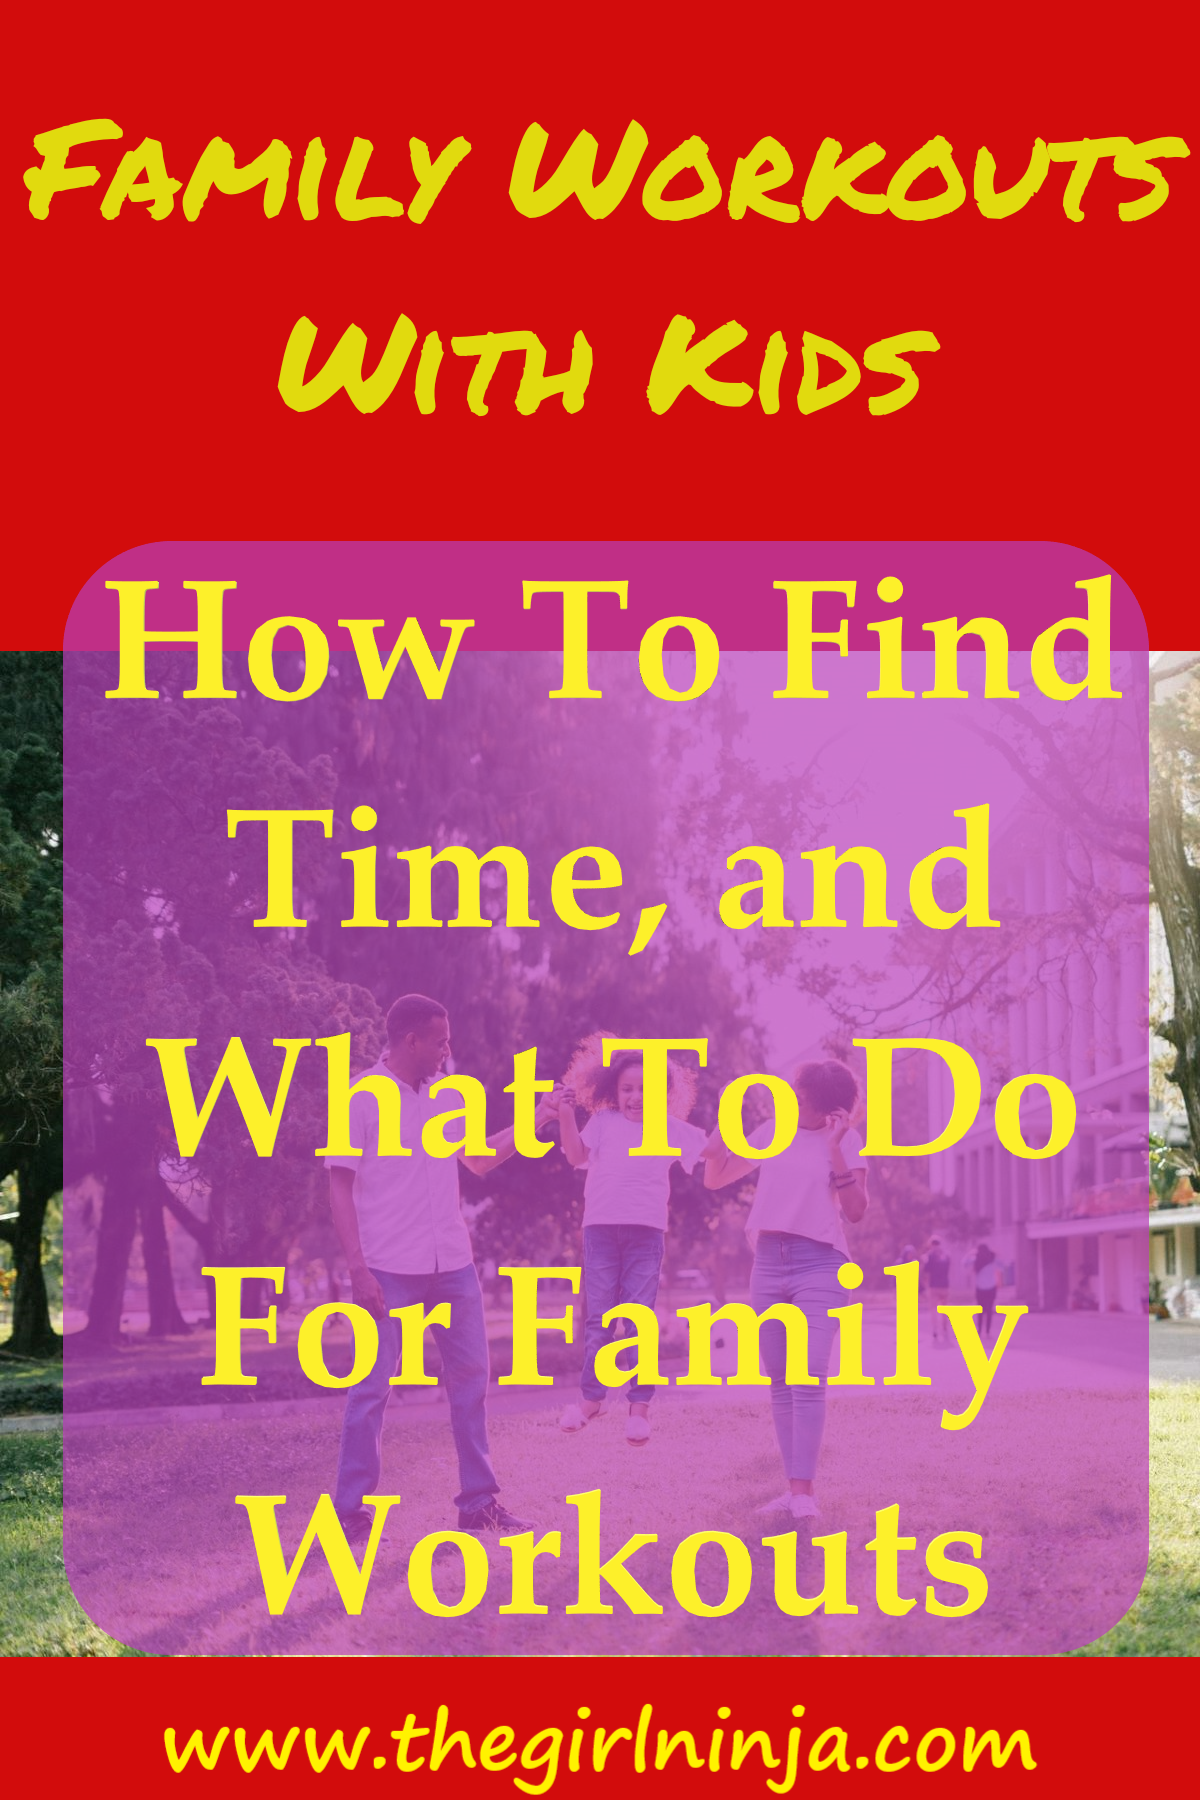 Red rectangle with yellow text at top that reads FAMILY WORKOUTS WITH KIDS.  Below, in a green field with trees in the background a dad and mom hold a little girl's hands and swing her up in the air. A translucent purple rectangle over the family has yellow text that reads How To Find Time, and What To Do For Family Workouts. At bottom center yellow text reads www.thegirlninja.com